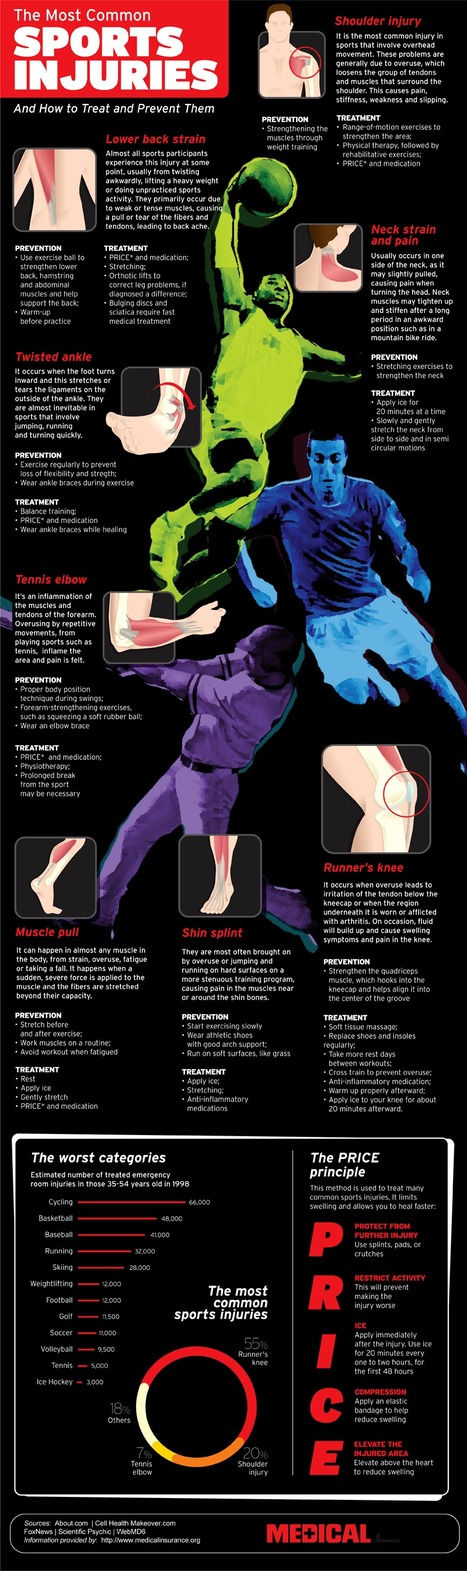 Most Common Sports Injuries And Treatments #Infographic   HealthSmart   Scoop.it